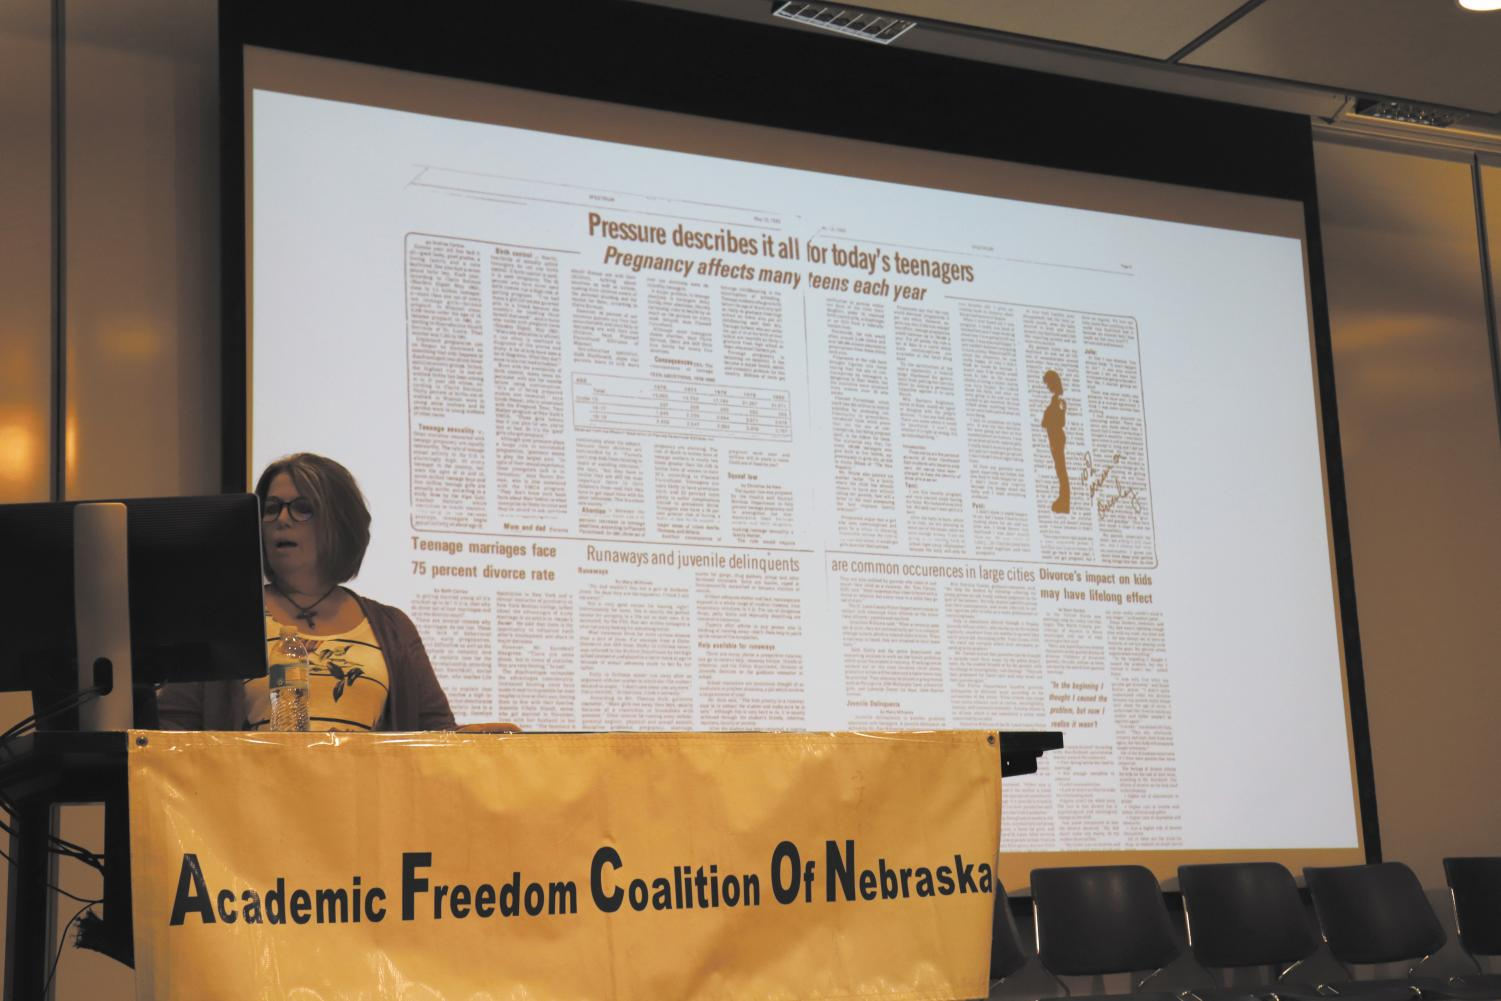 Cathy Kuhlmeier Frey, the plaintiff on Hazelwood v. Kuhlmeier, presents the spread that was removed from the paper by the principal in her AFCON key note presentation. Photo by Emily Nelson